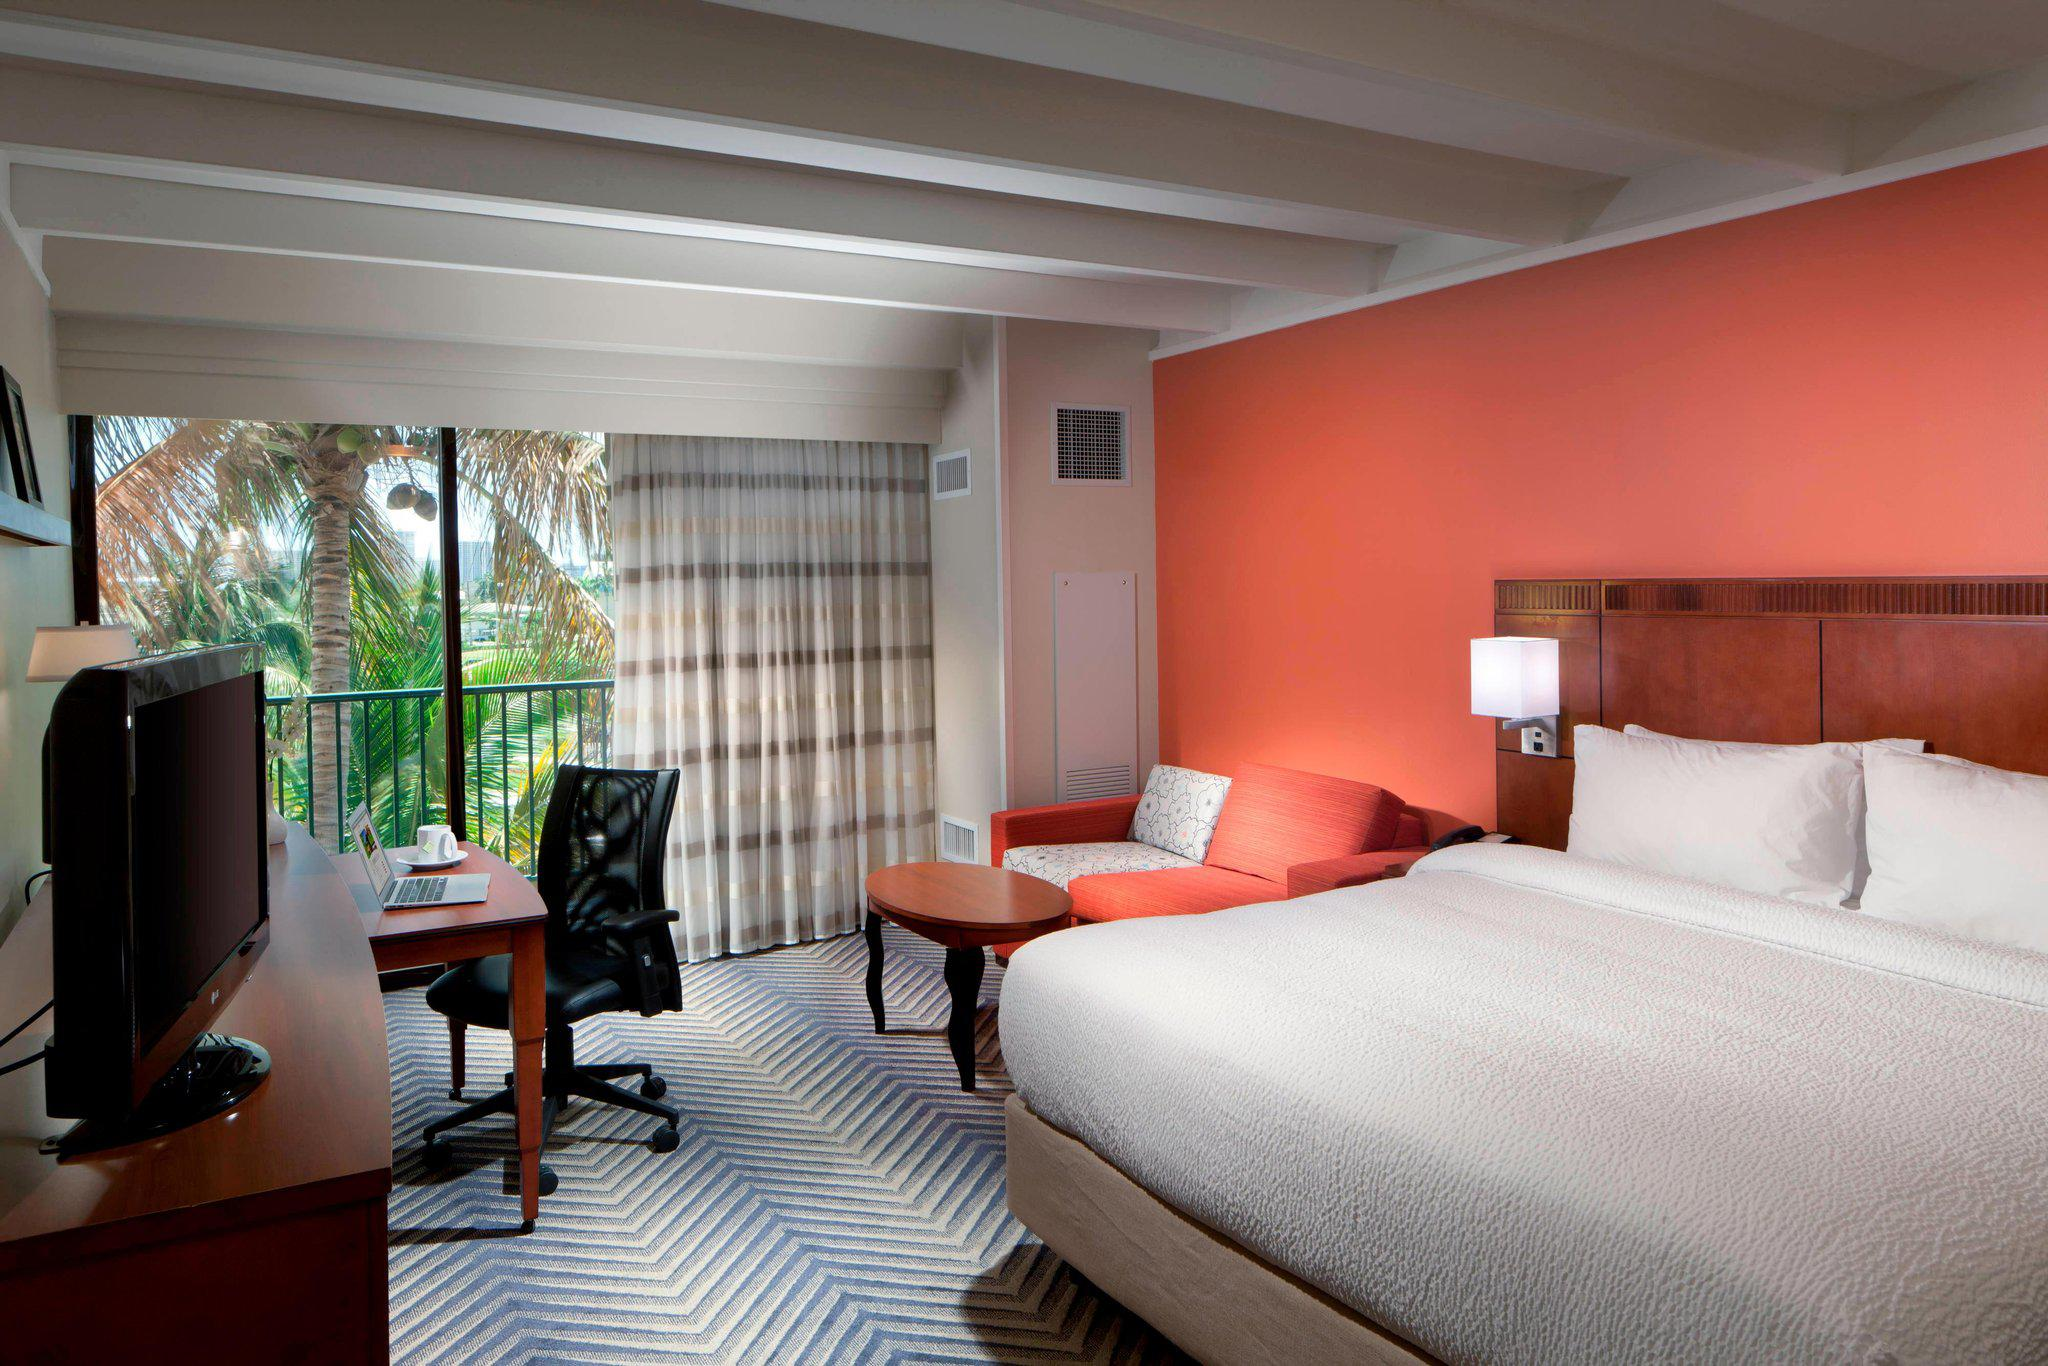 Courtyard by Marriott Fort Lauderdale East/Lauderdale-by-the-Sea